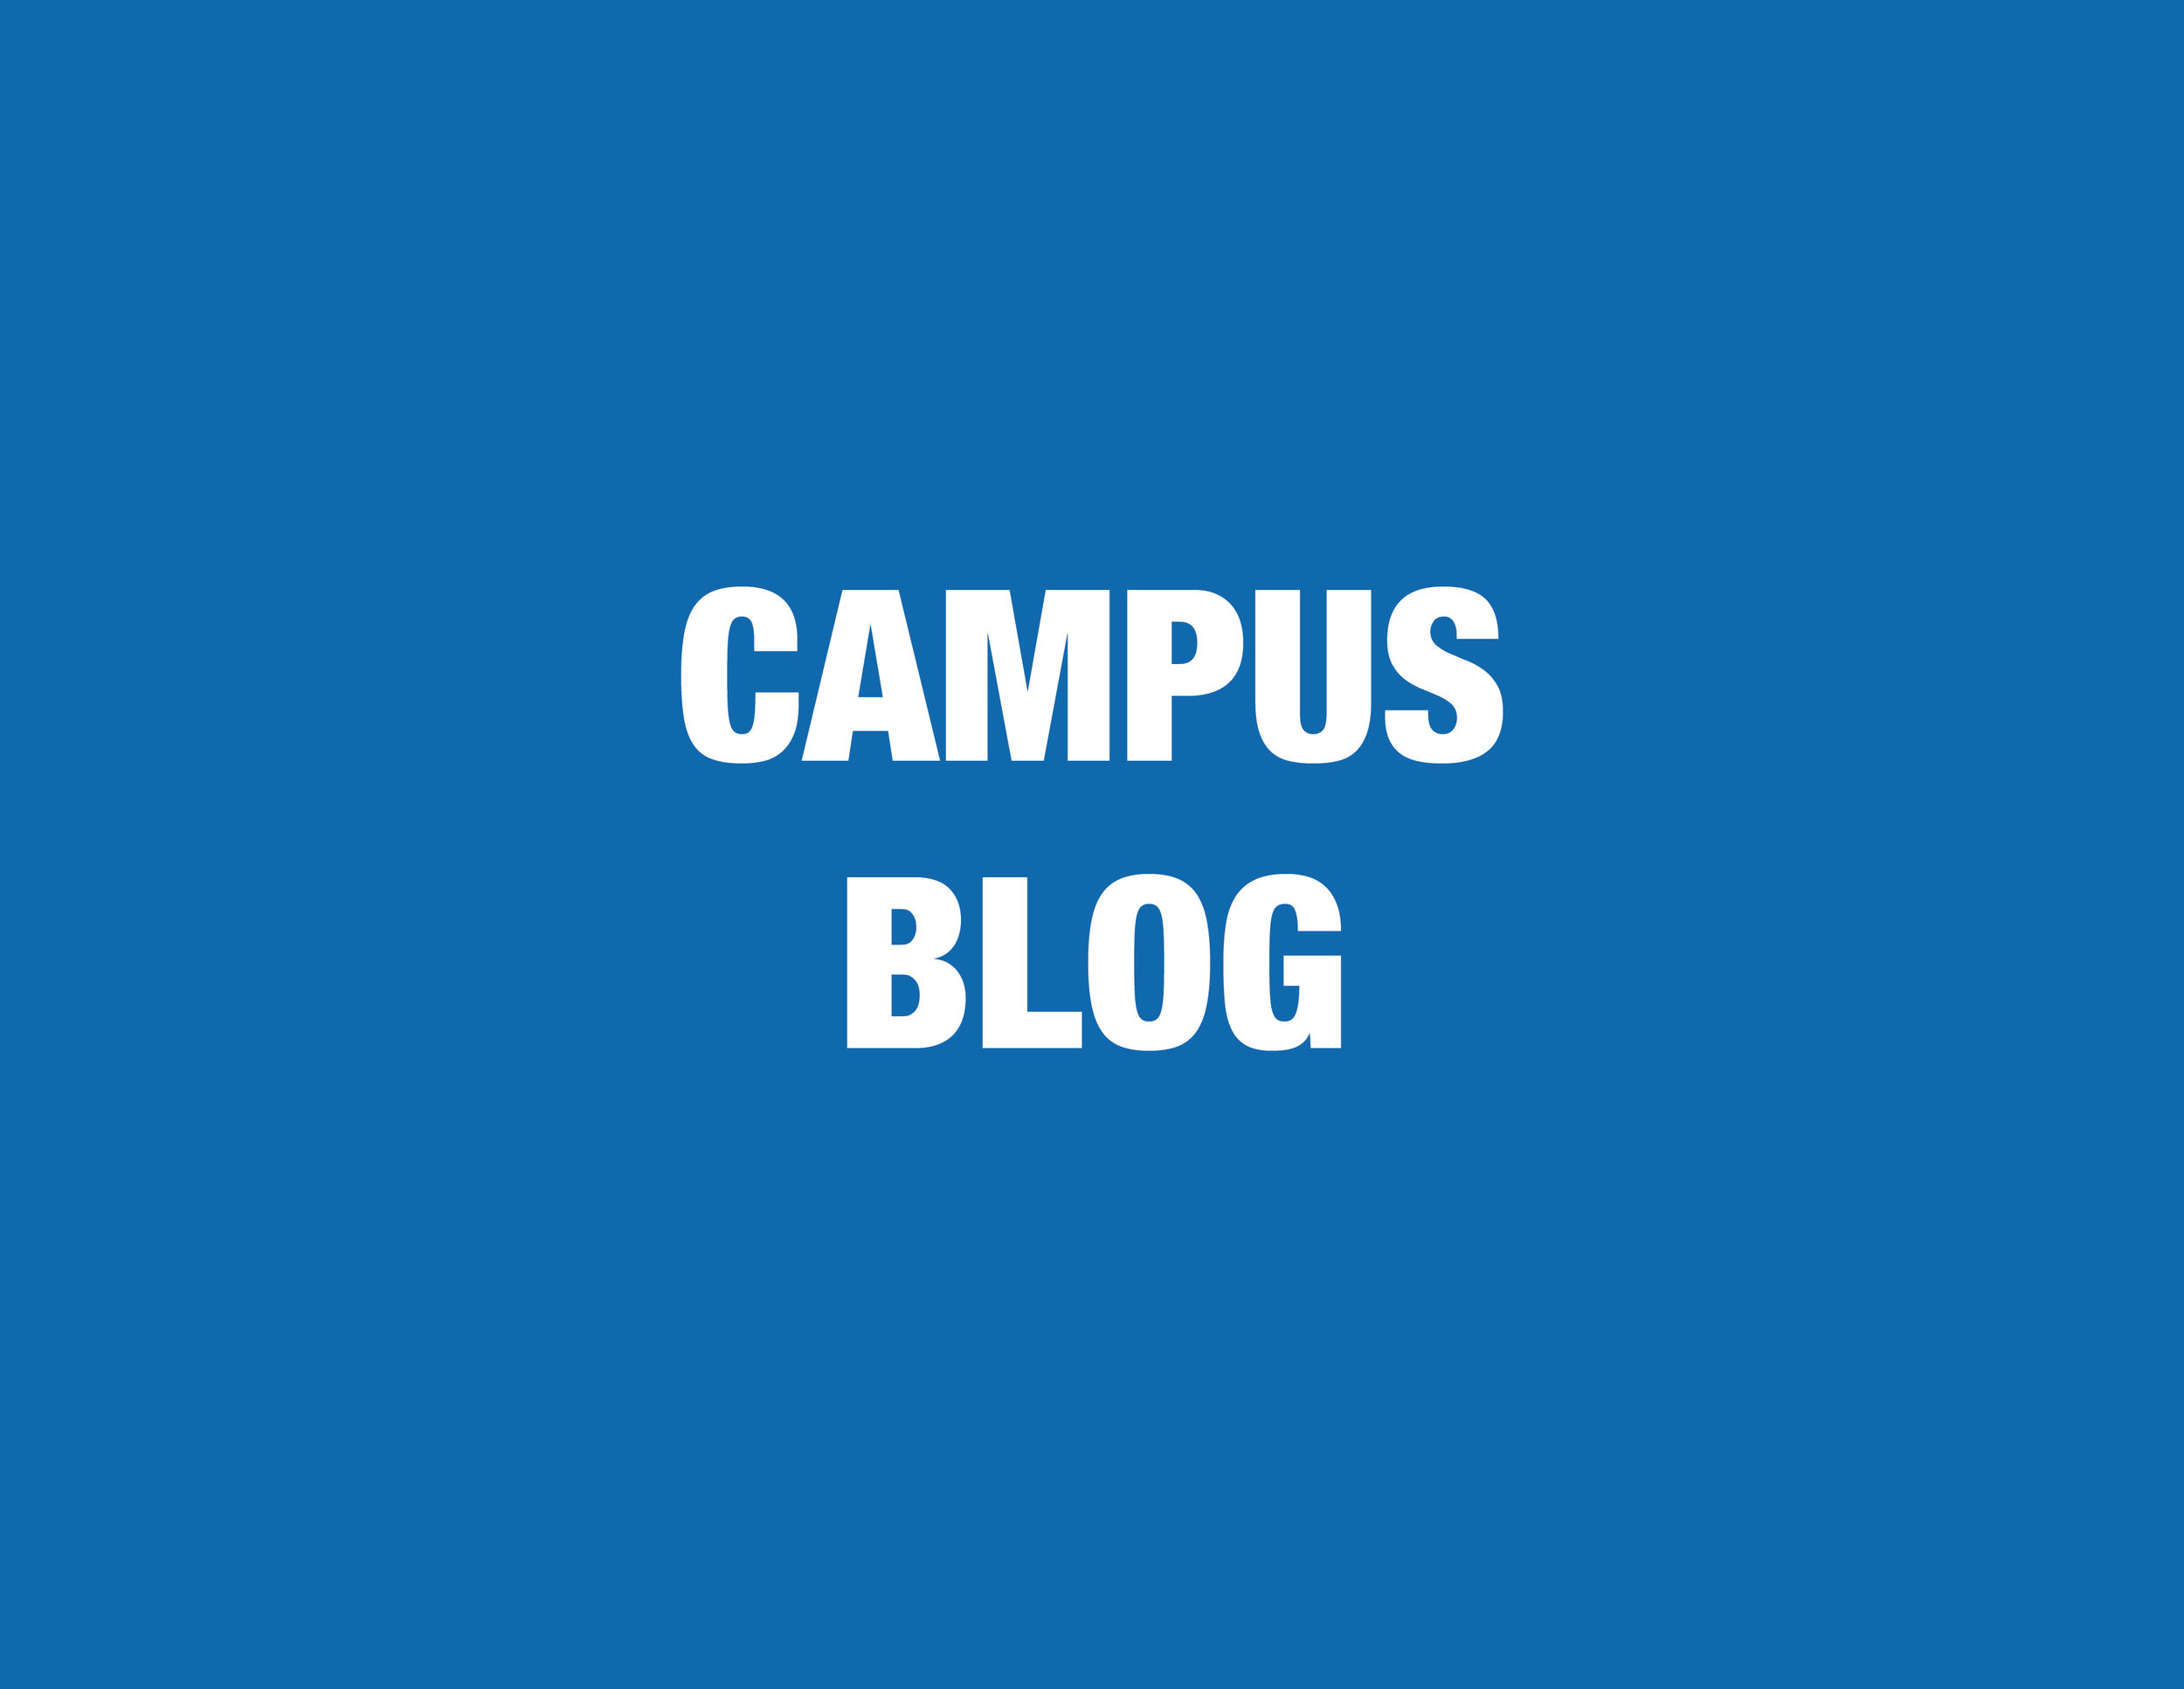 CAMPUS BLOG-01.png